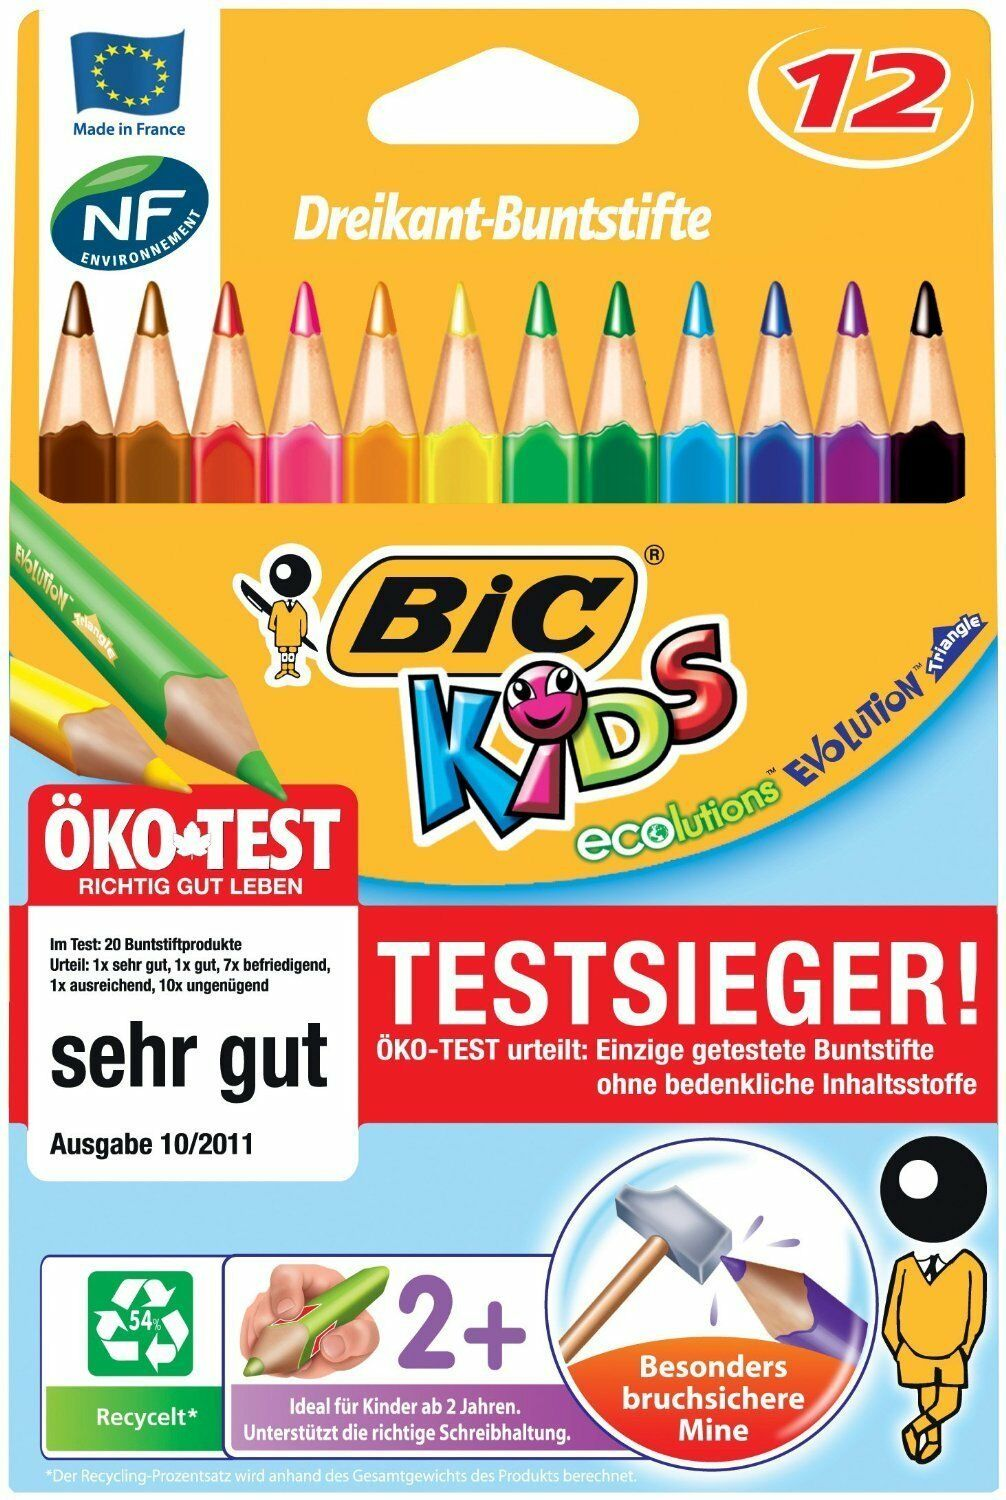 Bic Kids ECOlutions Evolution Buntstifte Set mit 12 Farbstiften Dreikant Jumbo